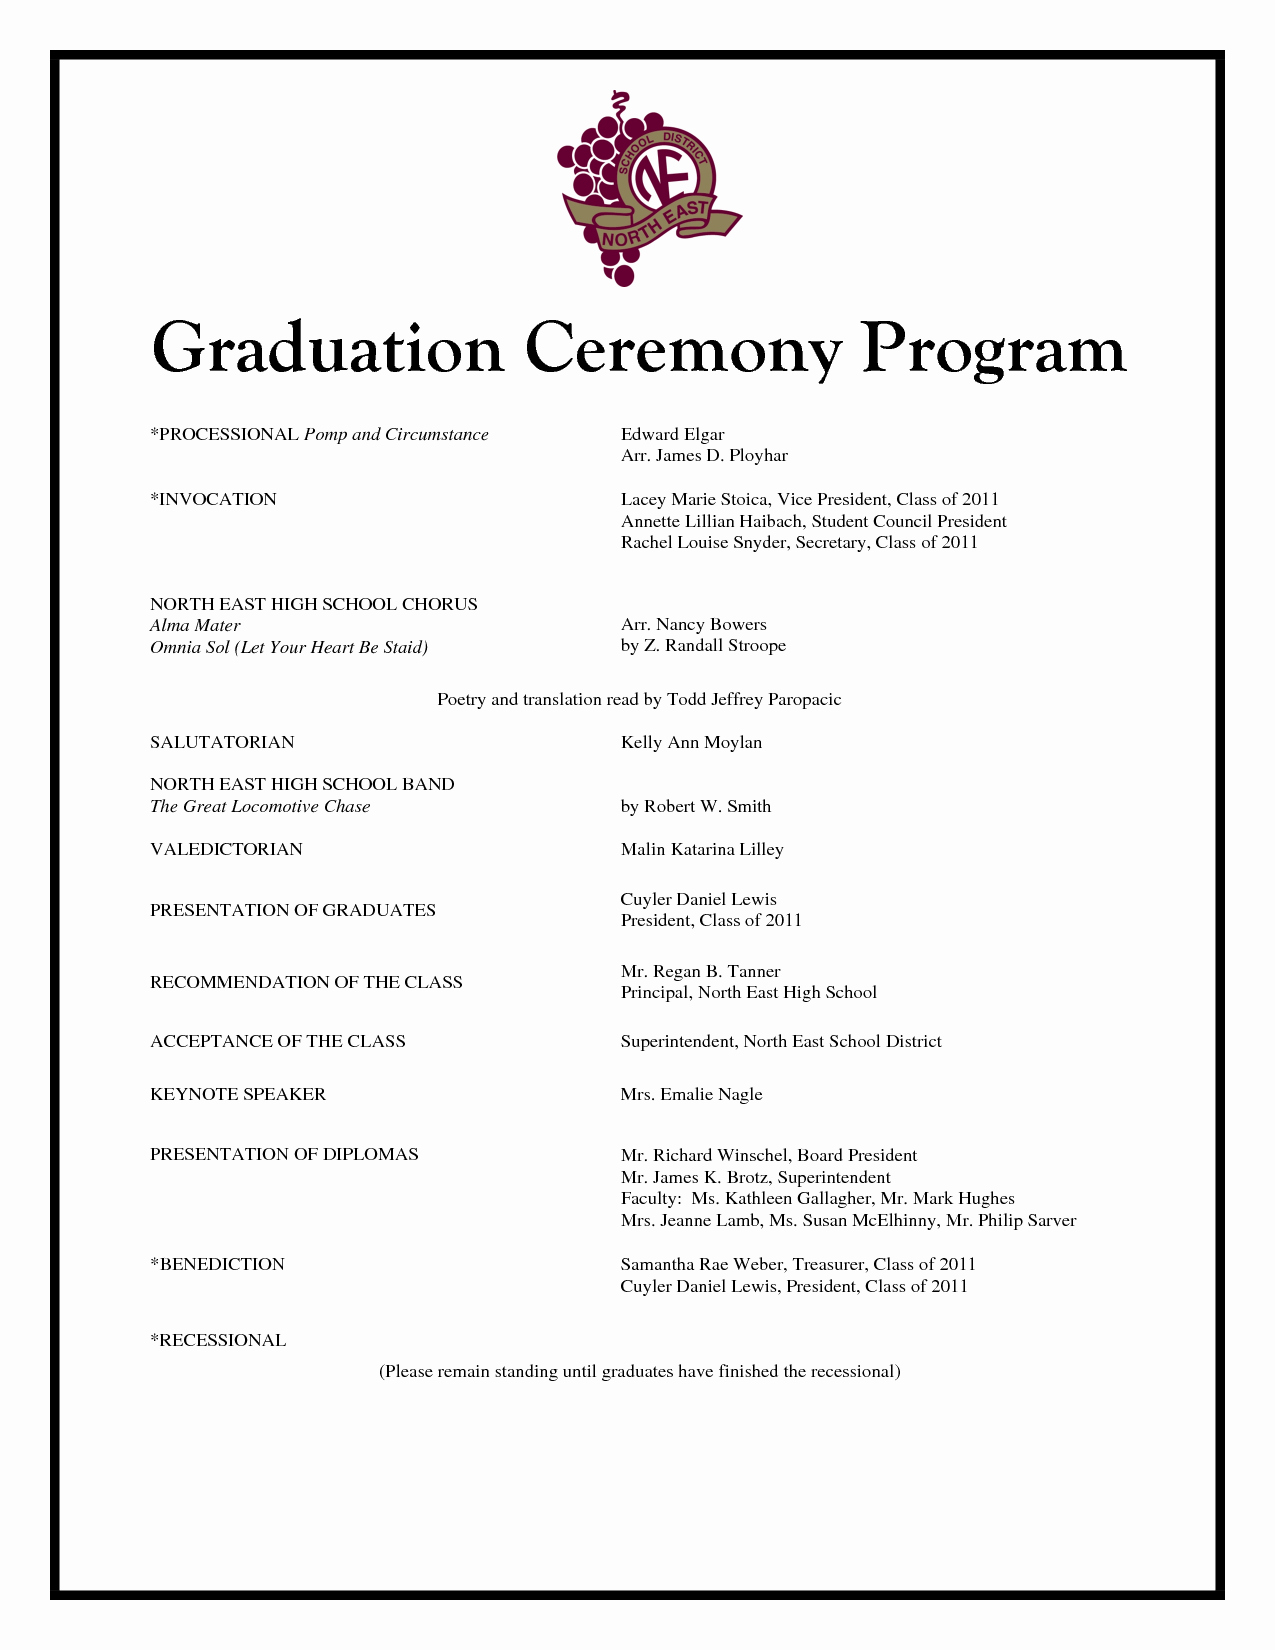 Graduation Program Template Microsoft Word Fresh Graduation Program Template Beepmunk